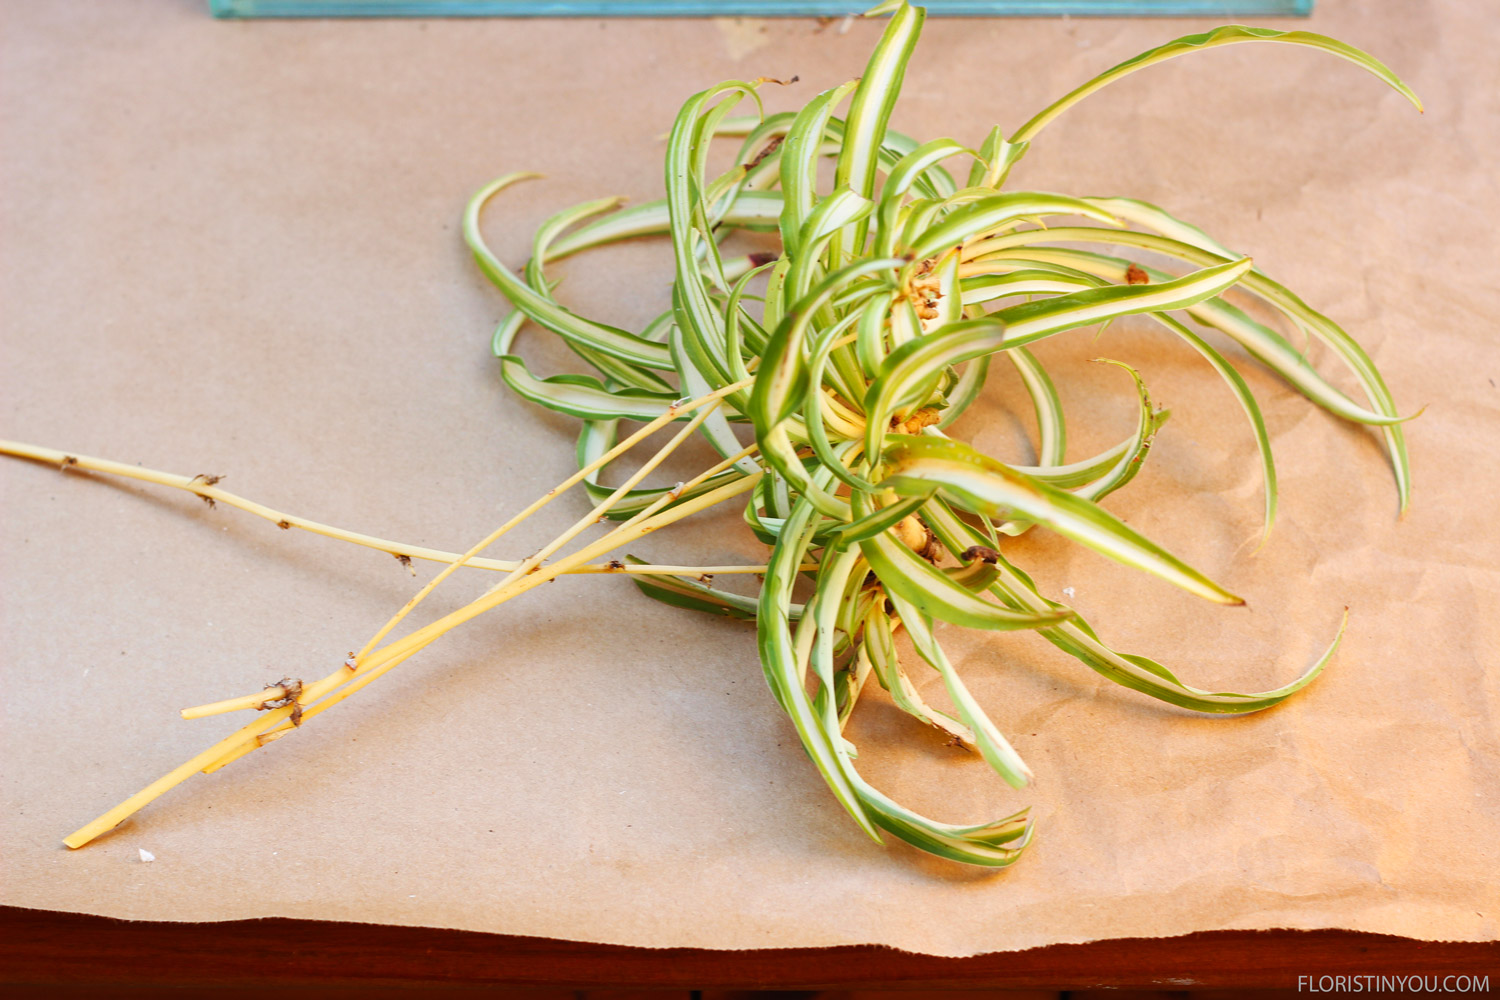 Cut 4 medium Spider Plants with runners stems on. Leave stems about 4 inches long.